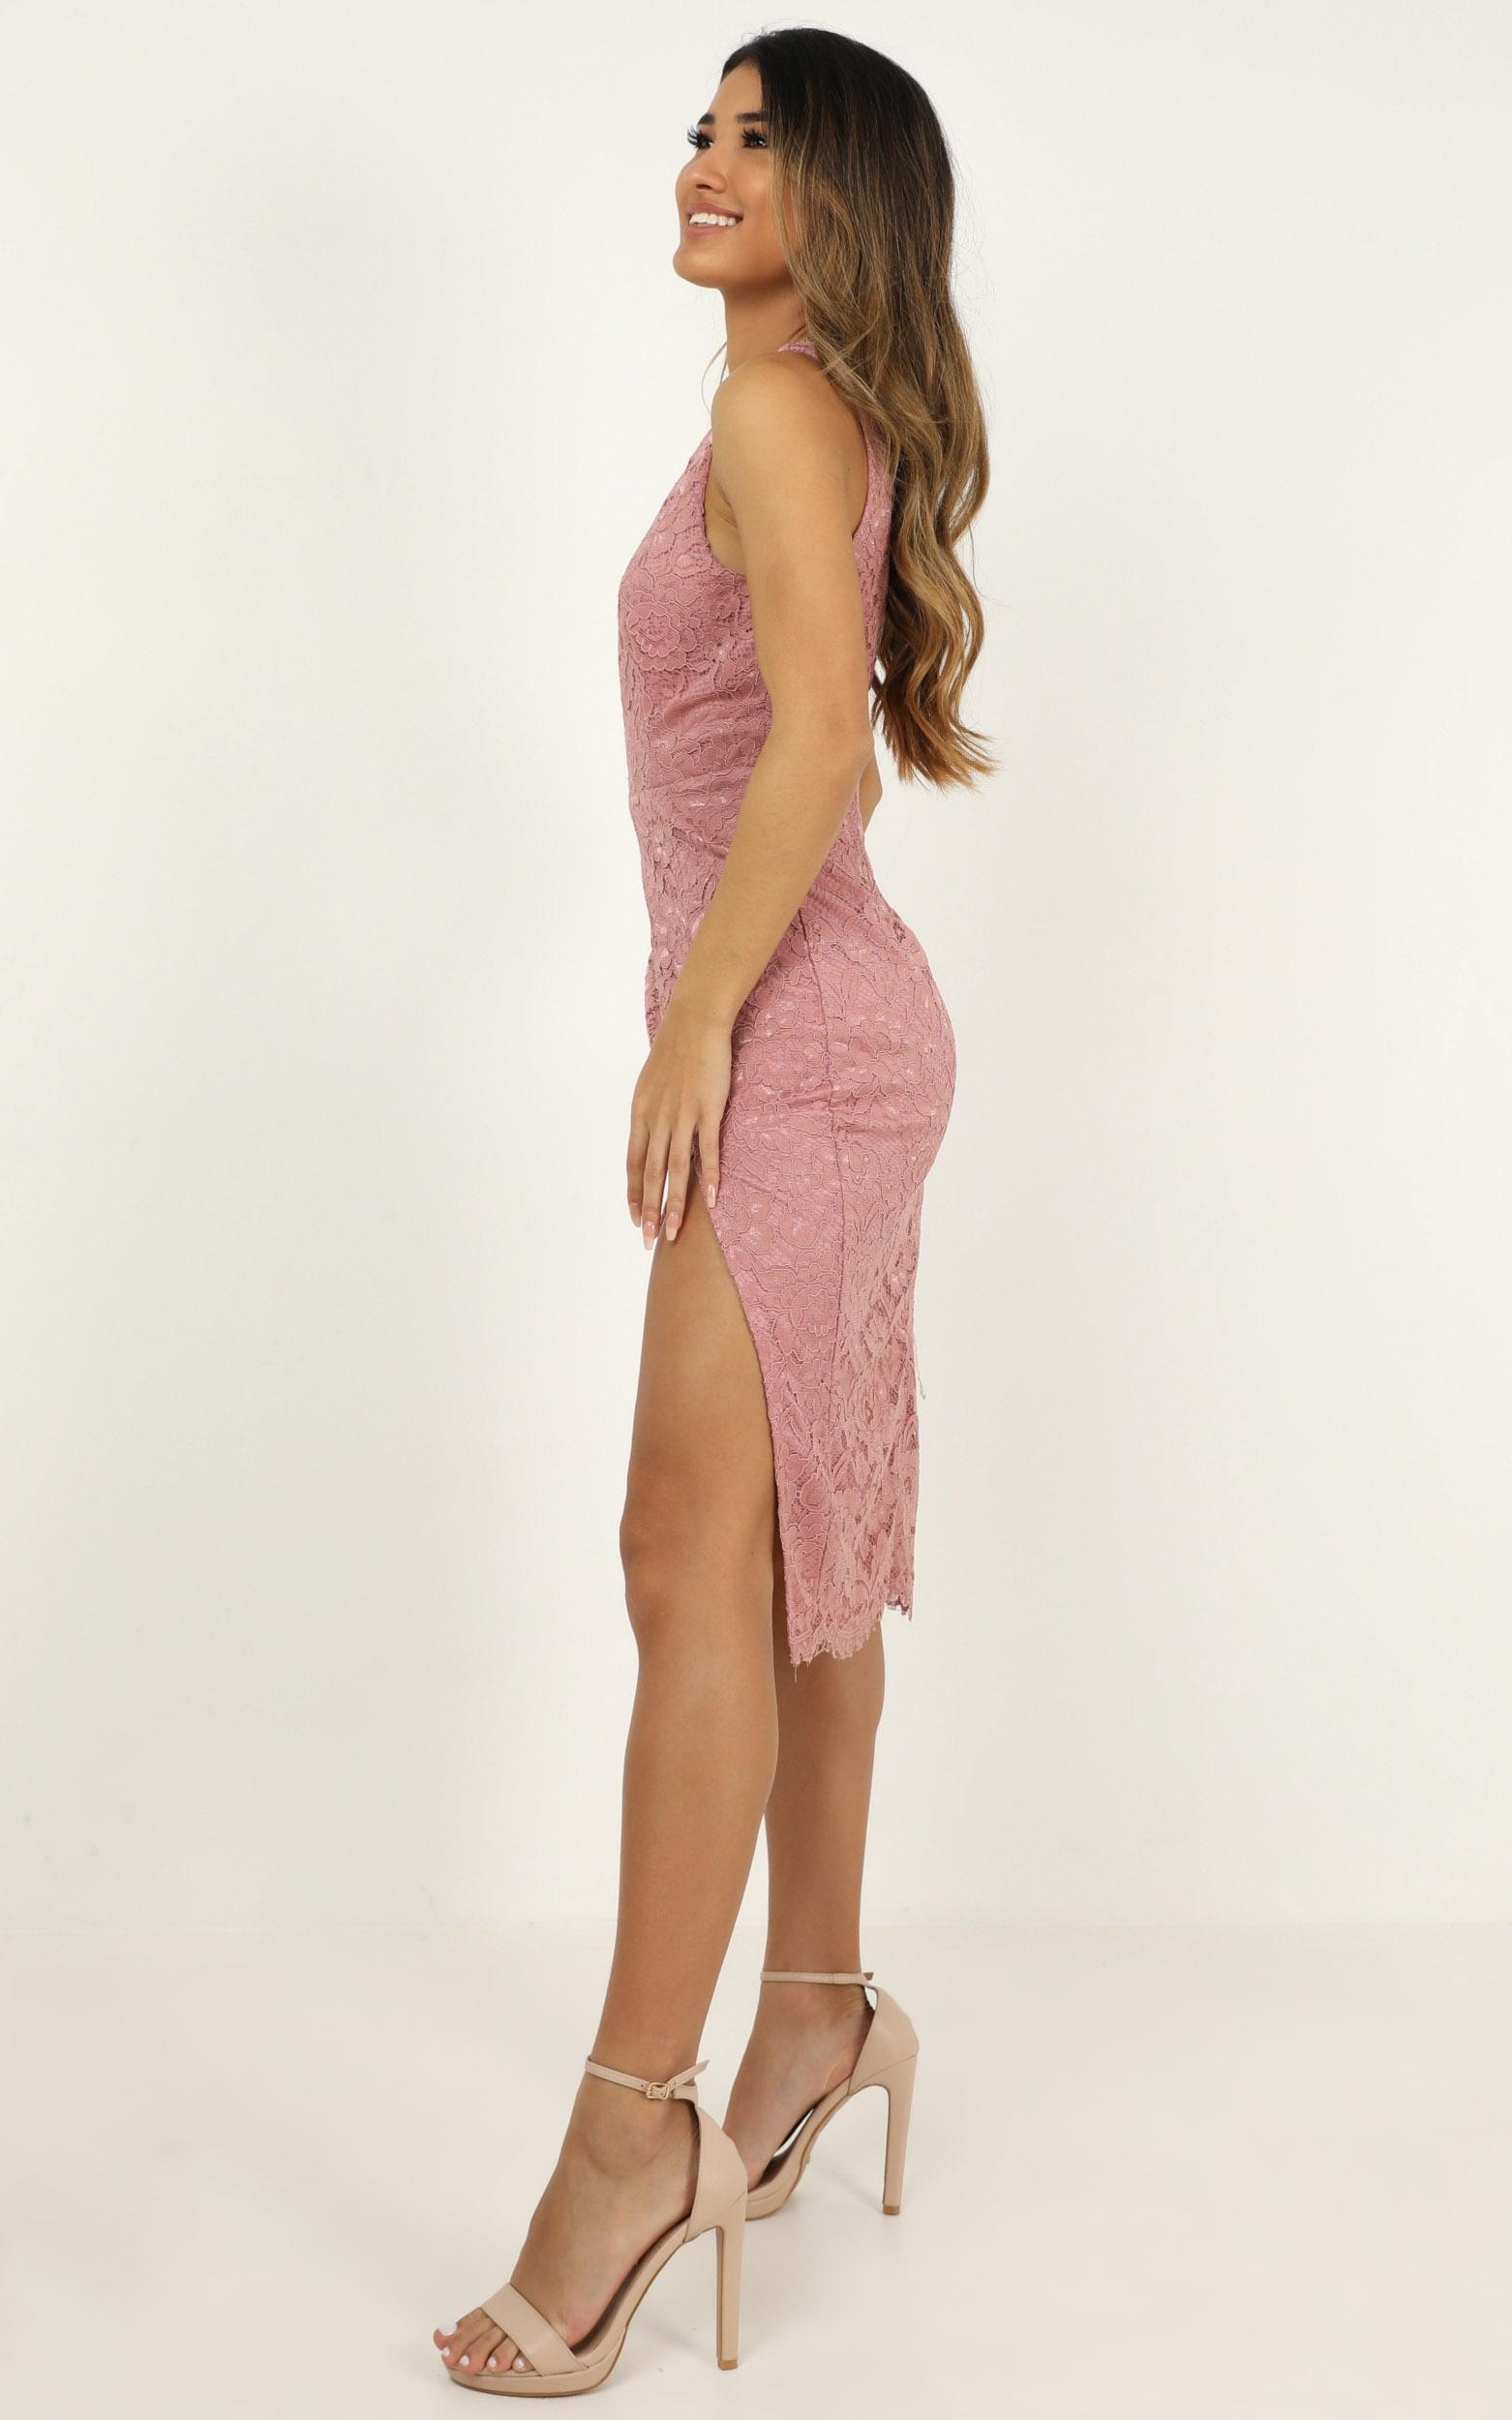 My Kind of Party Dress in blush lace - 20 (XXXXL), Blush, hi-res image number null